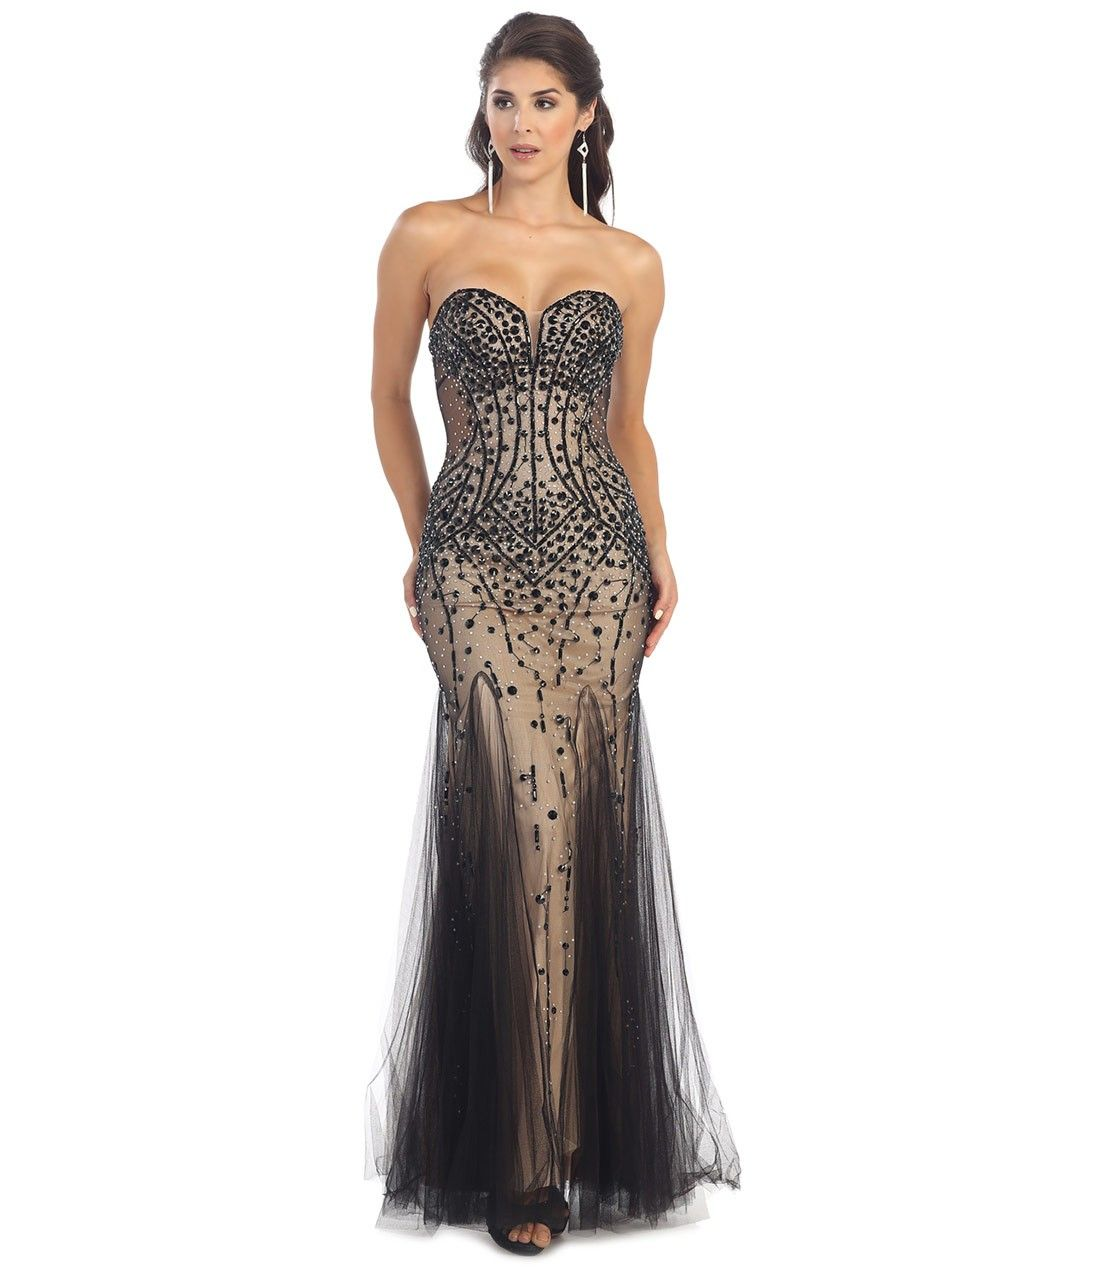 Black & Nude Strapless Sweetheart Beaded Dress